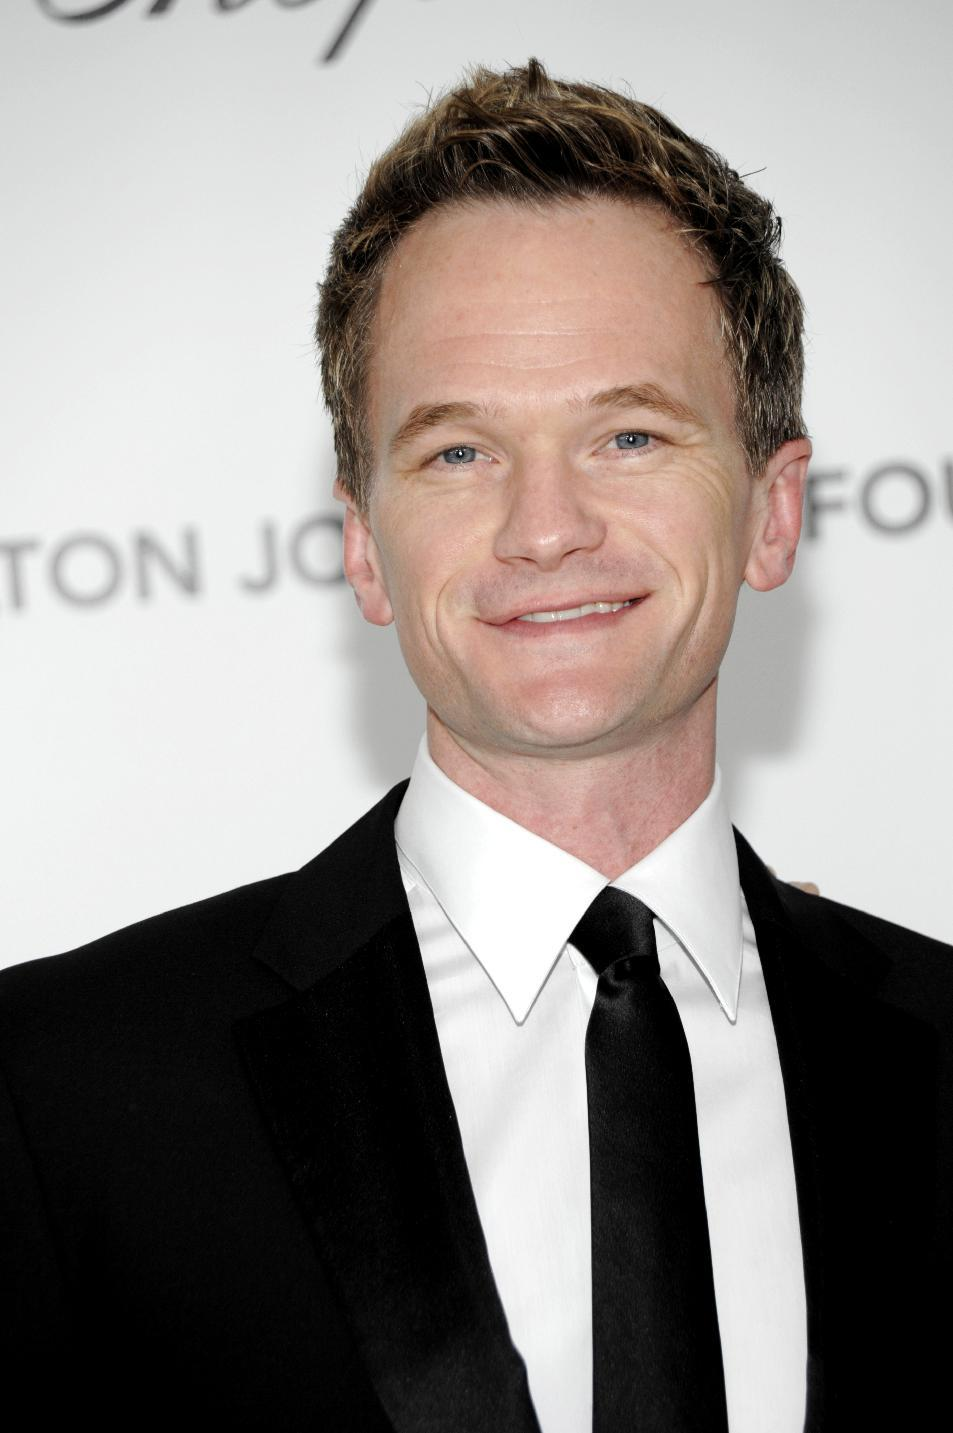 Neil Patrick Harris arrives at the Elton John AIDS Foundation Academy Awards viewing party in West Hollywood, Calif. on Sunday, Feb. 26, 2012. (AP Photo/Dan Steinberg)